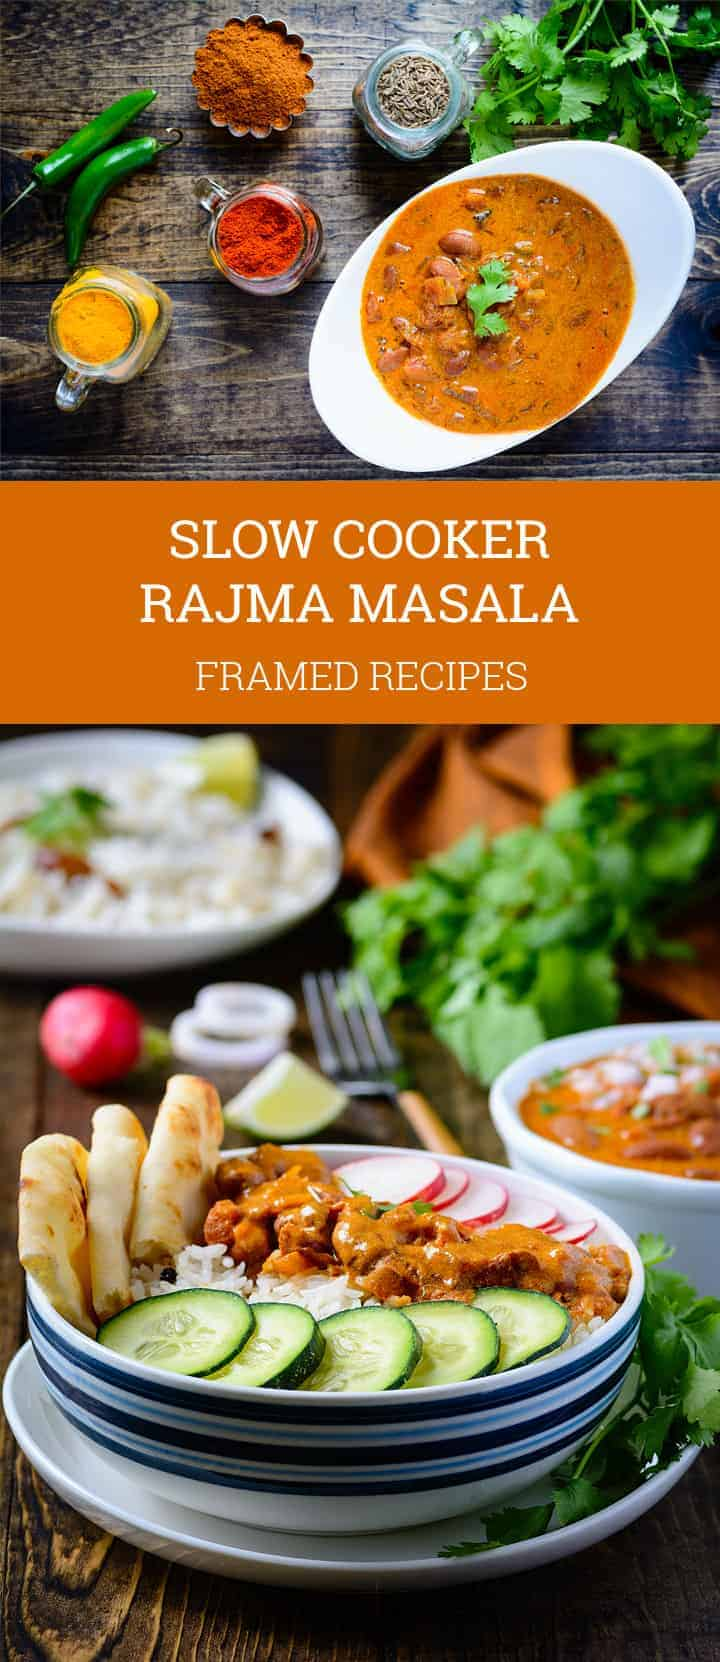 Slow Cooker Rajma Masala Bowl